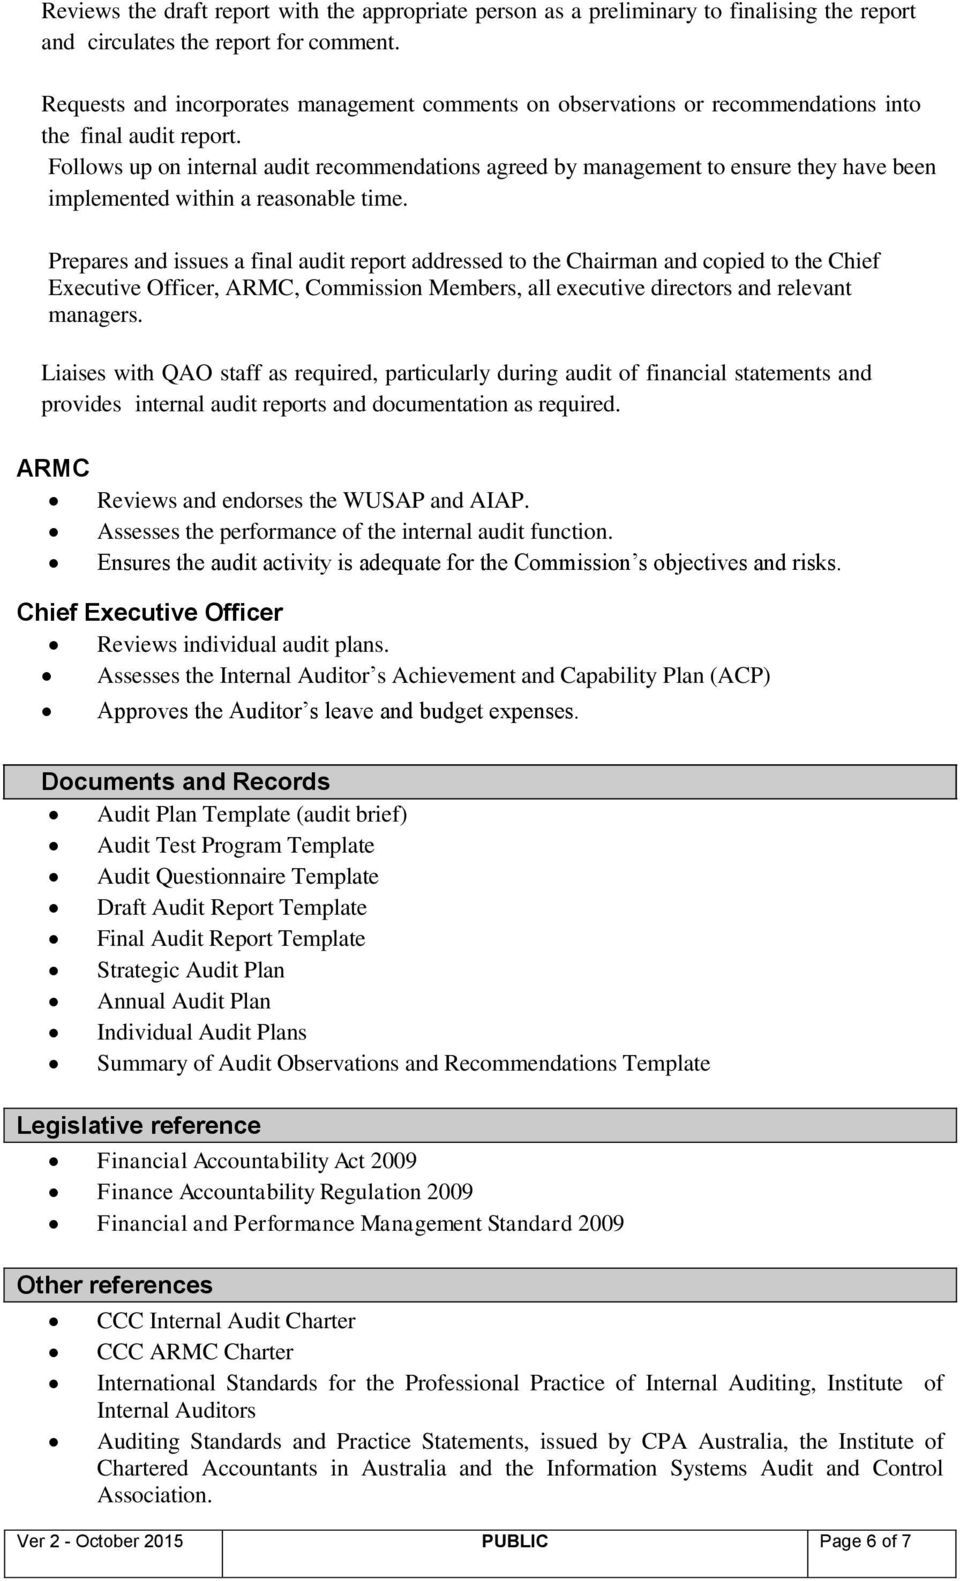 Sample Internal Audit Report Executive Summary With Internal Control Audit Report Template Great Professional Templa Internal Audit Audit Forensic Accounting Executive summary financial report template